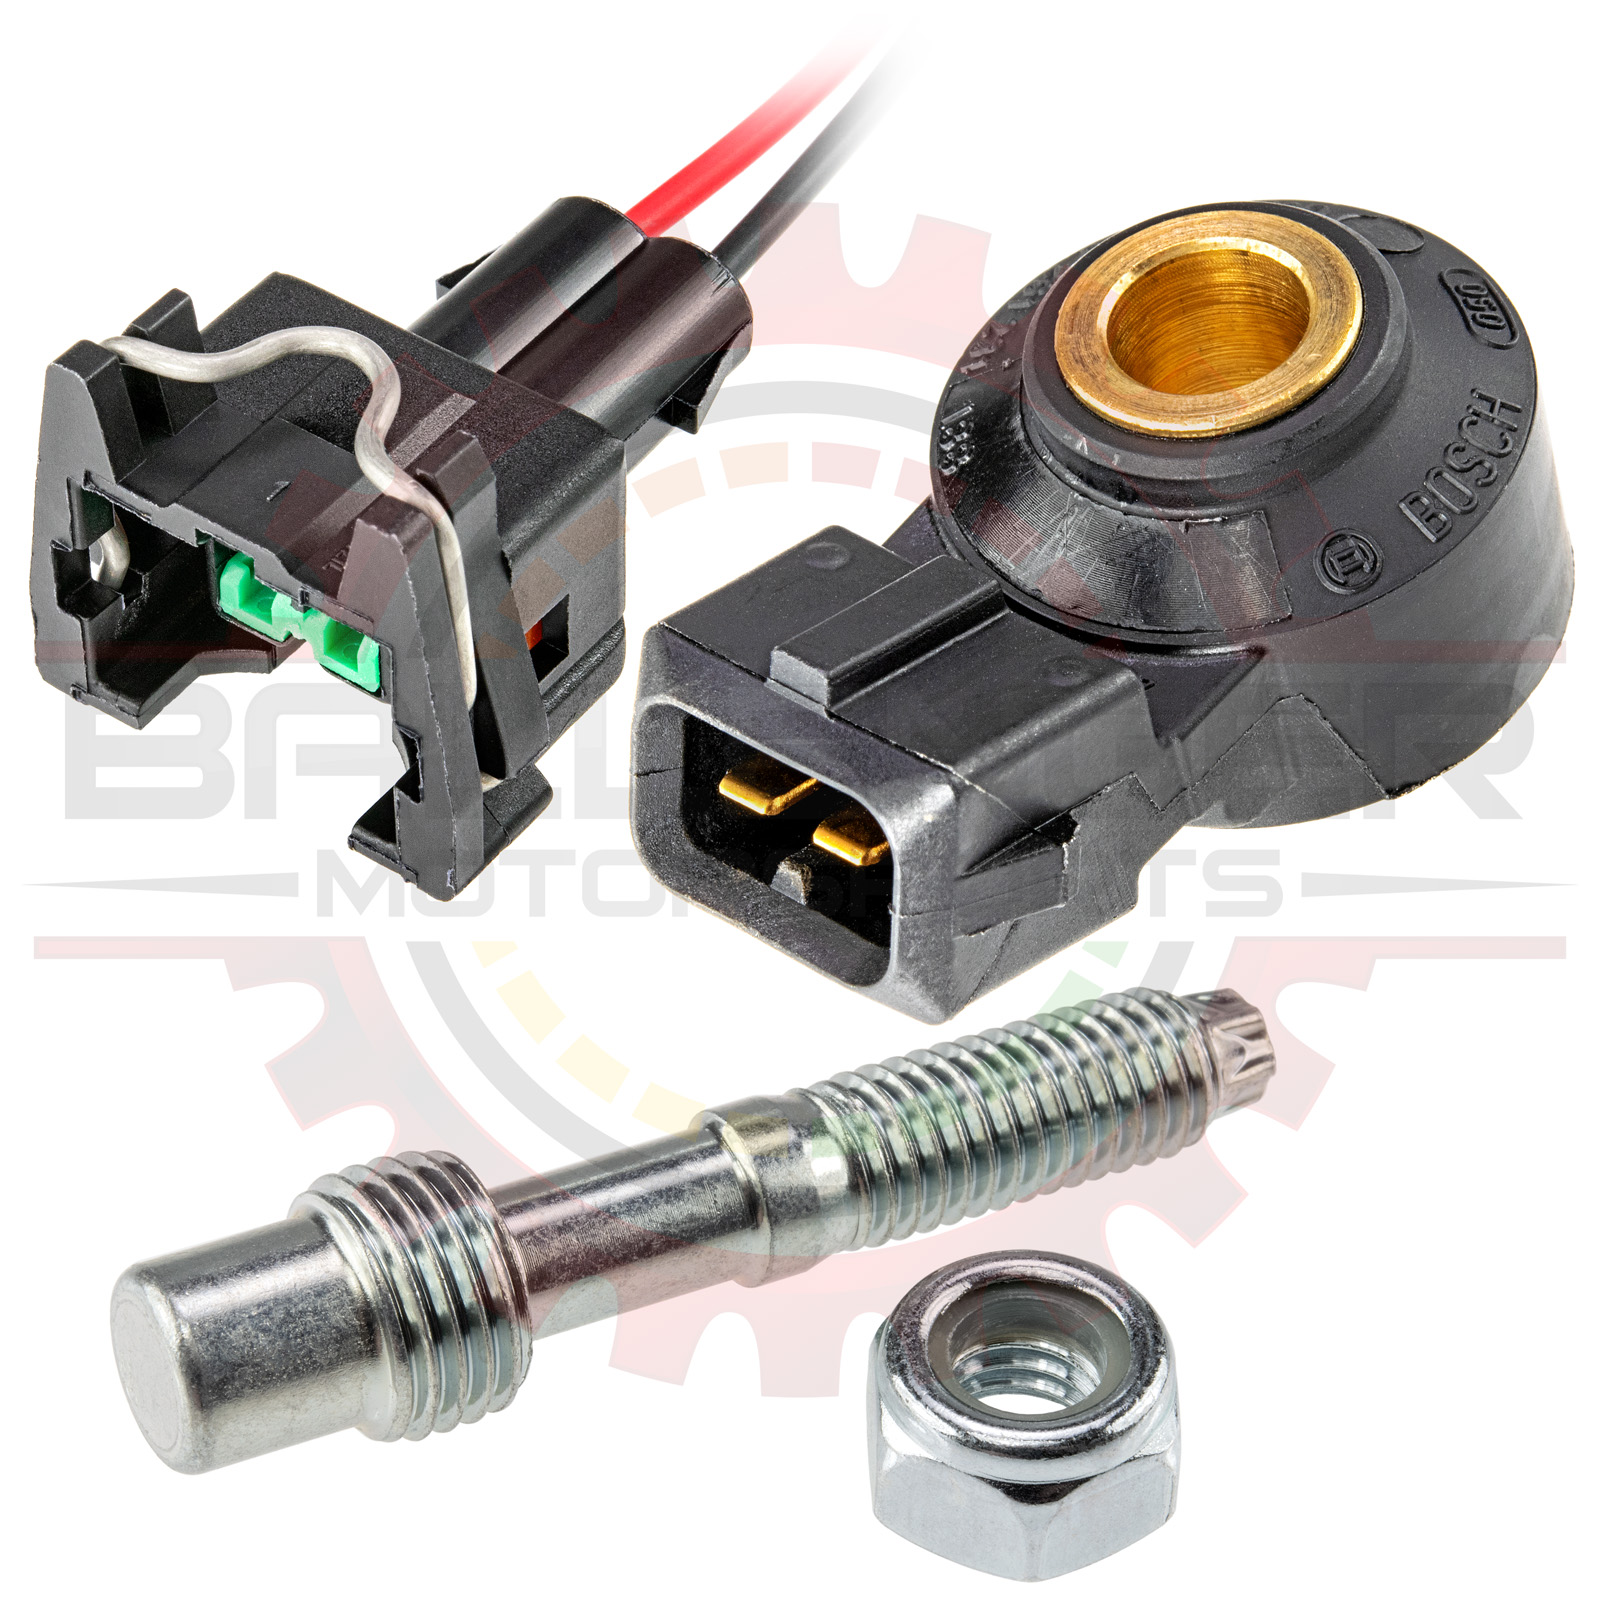 Bosch Motorsports KS4-P Knock / Detonation Sensor with Pigtail Kit and  Mounting Hardware